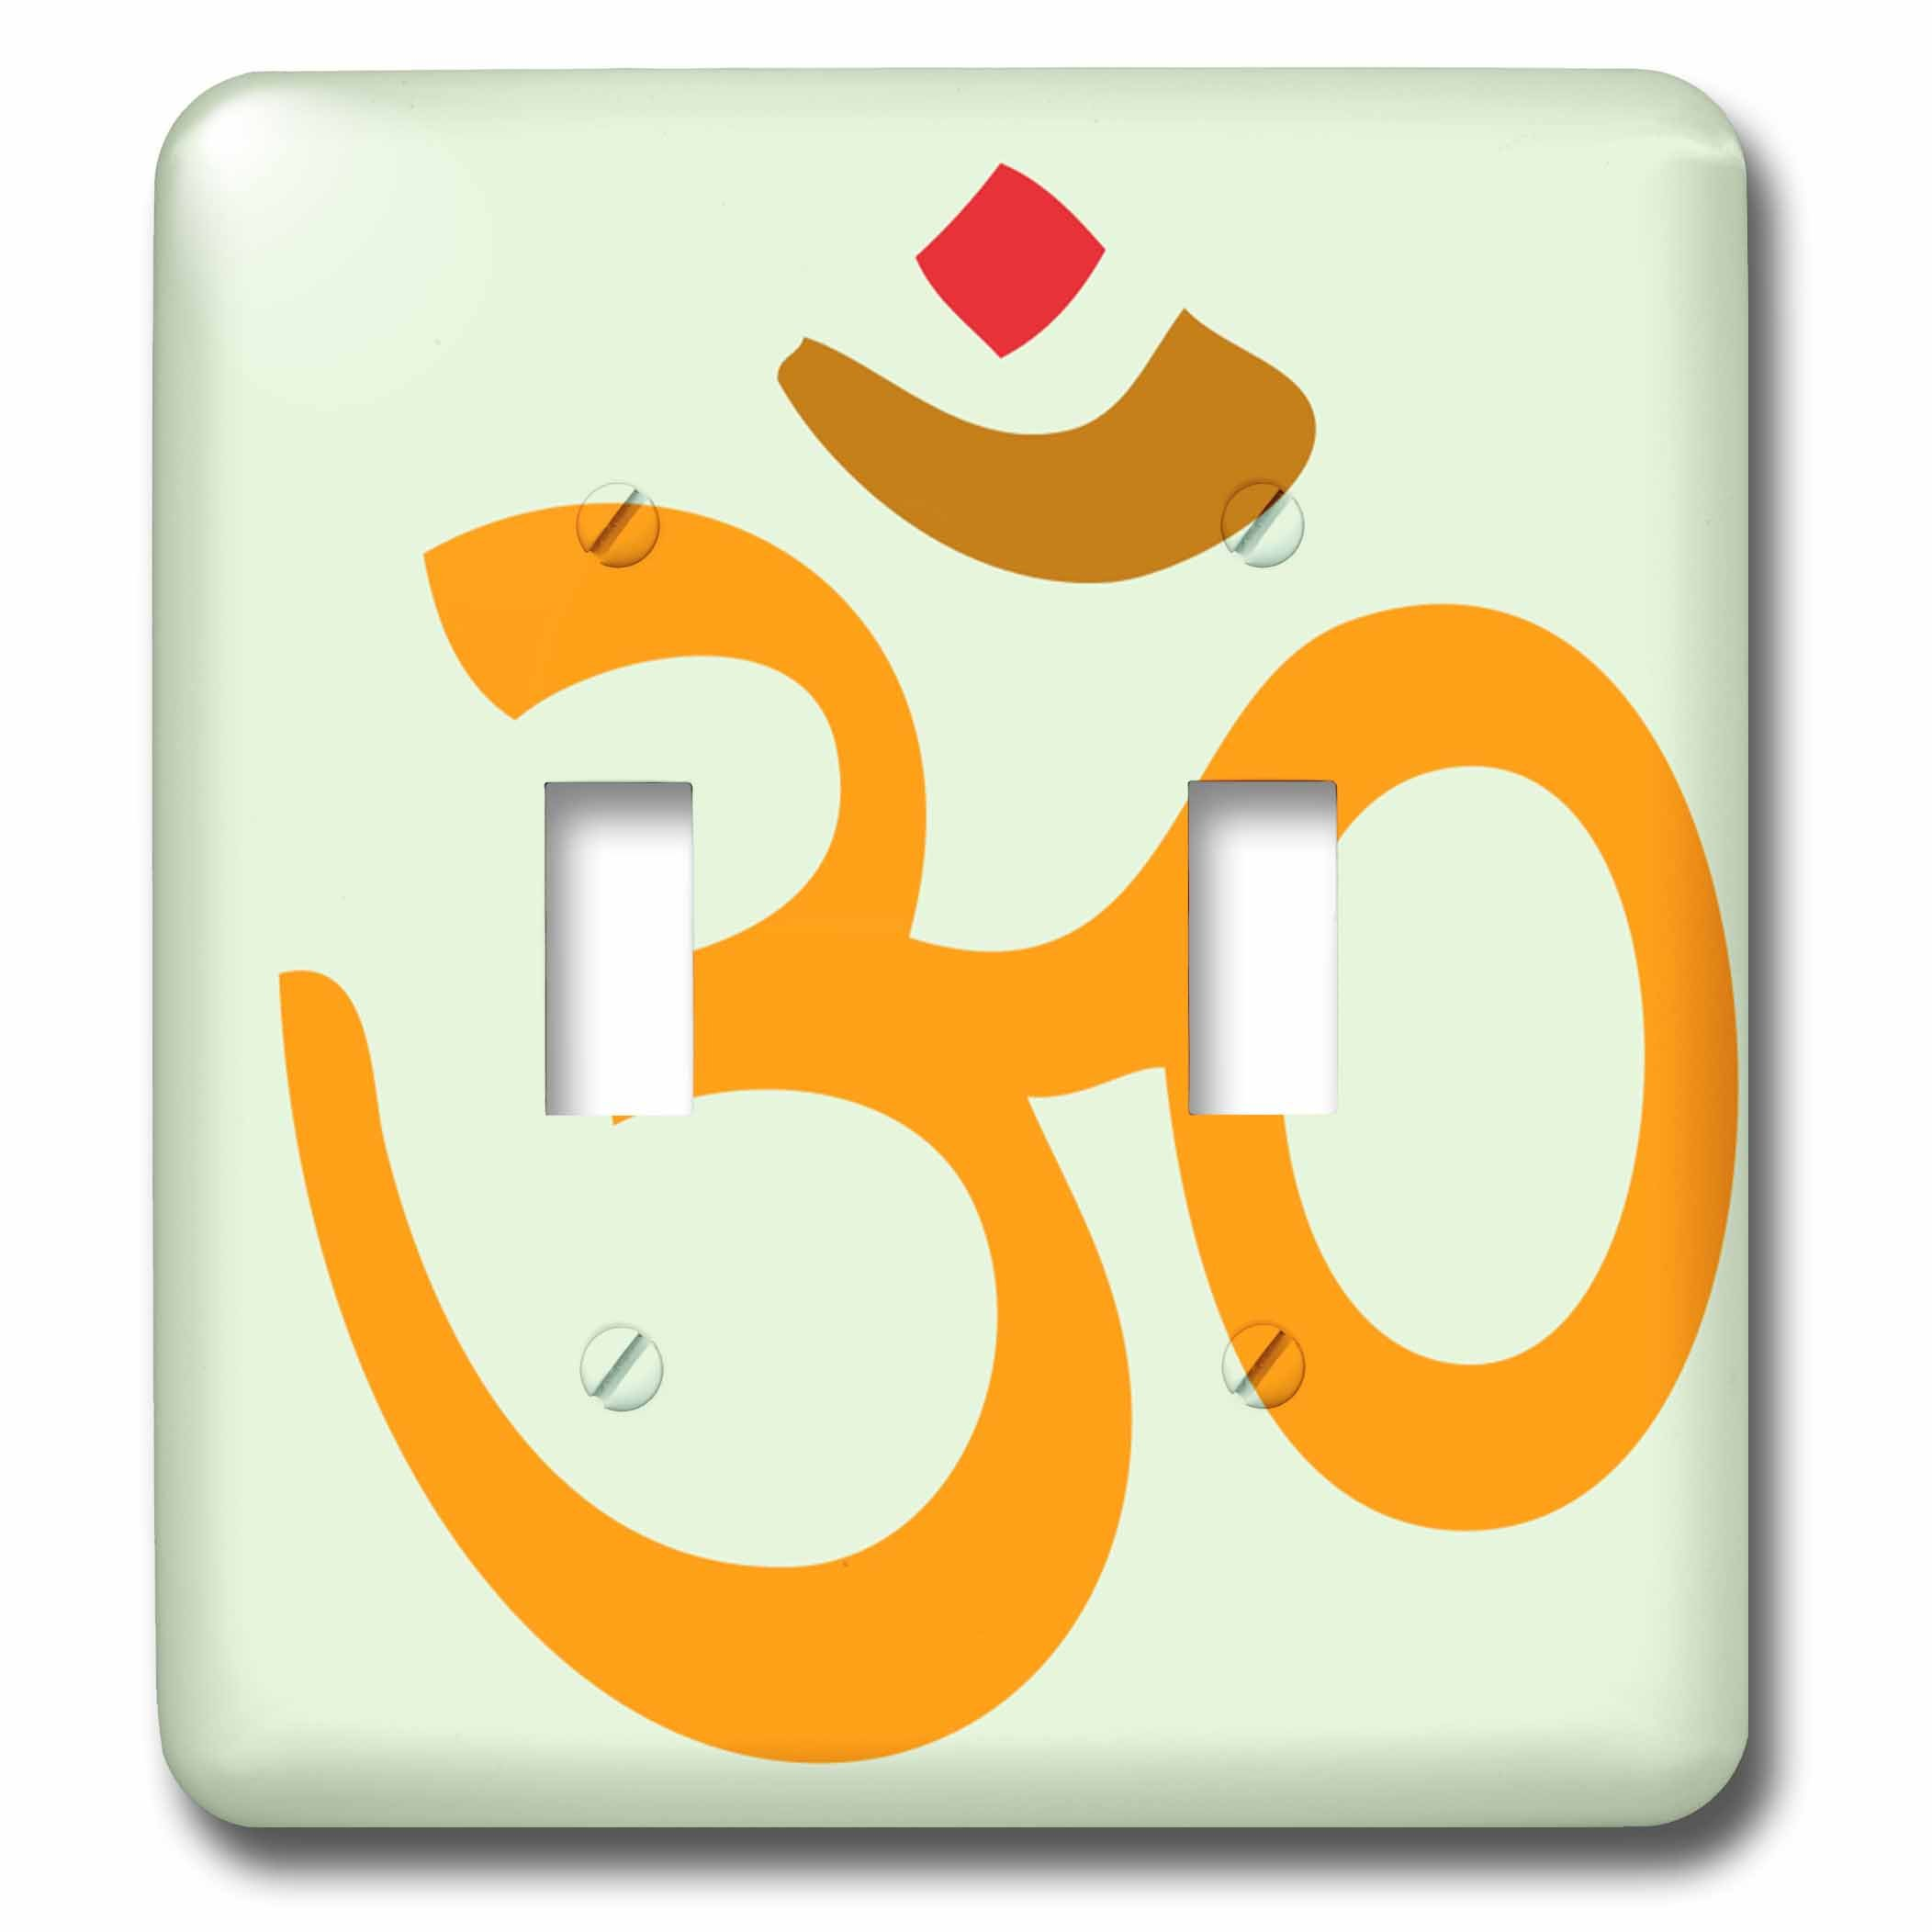 3dRose (lsp_254239_2) Double Toggle Switch (2) Namaste Hindu Indian India Hello Friend Quotes Symbol